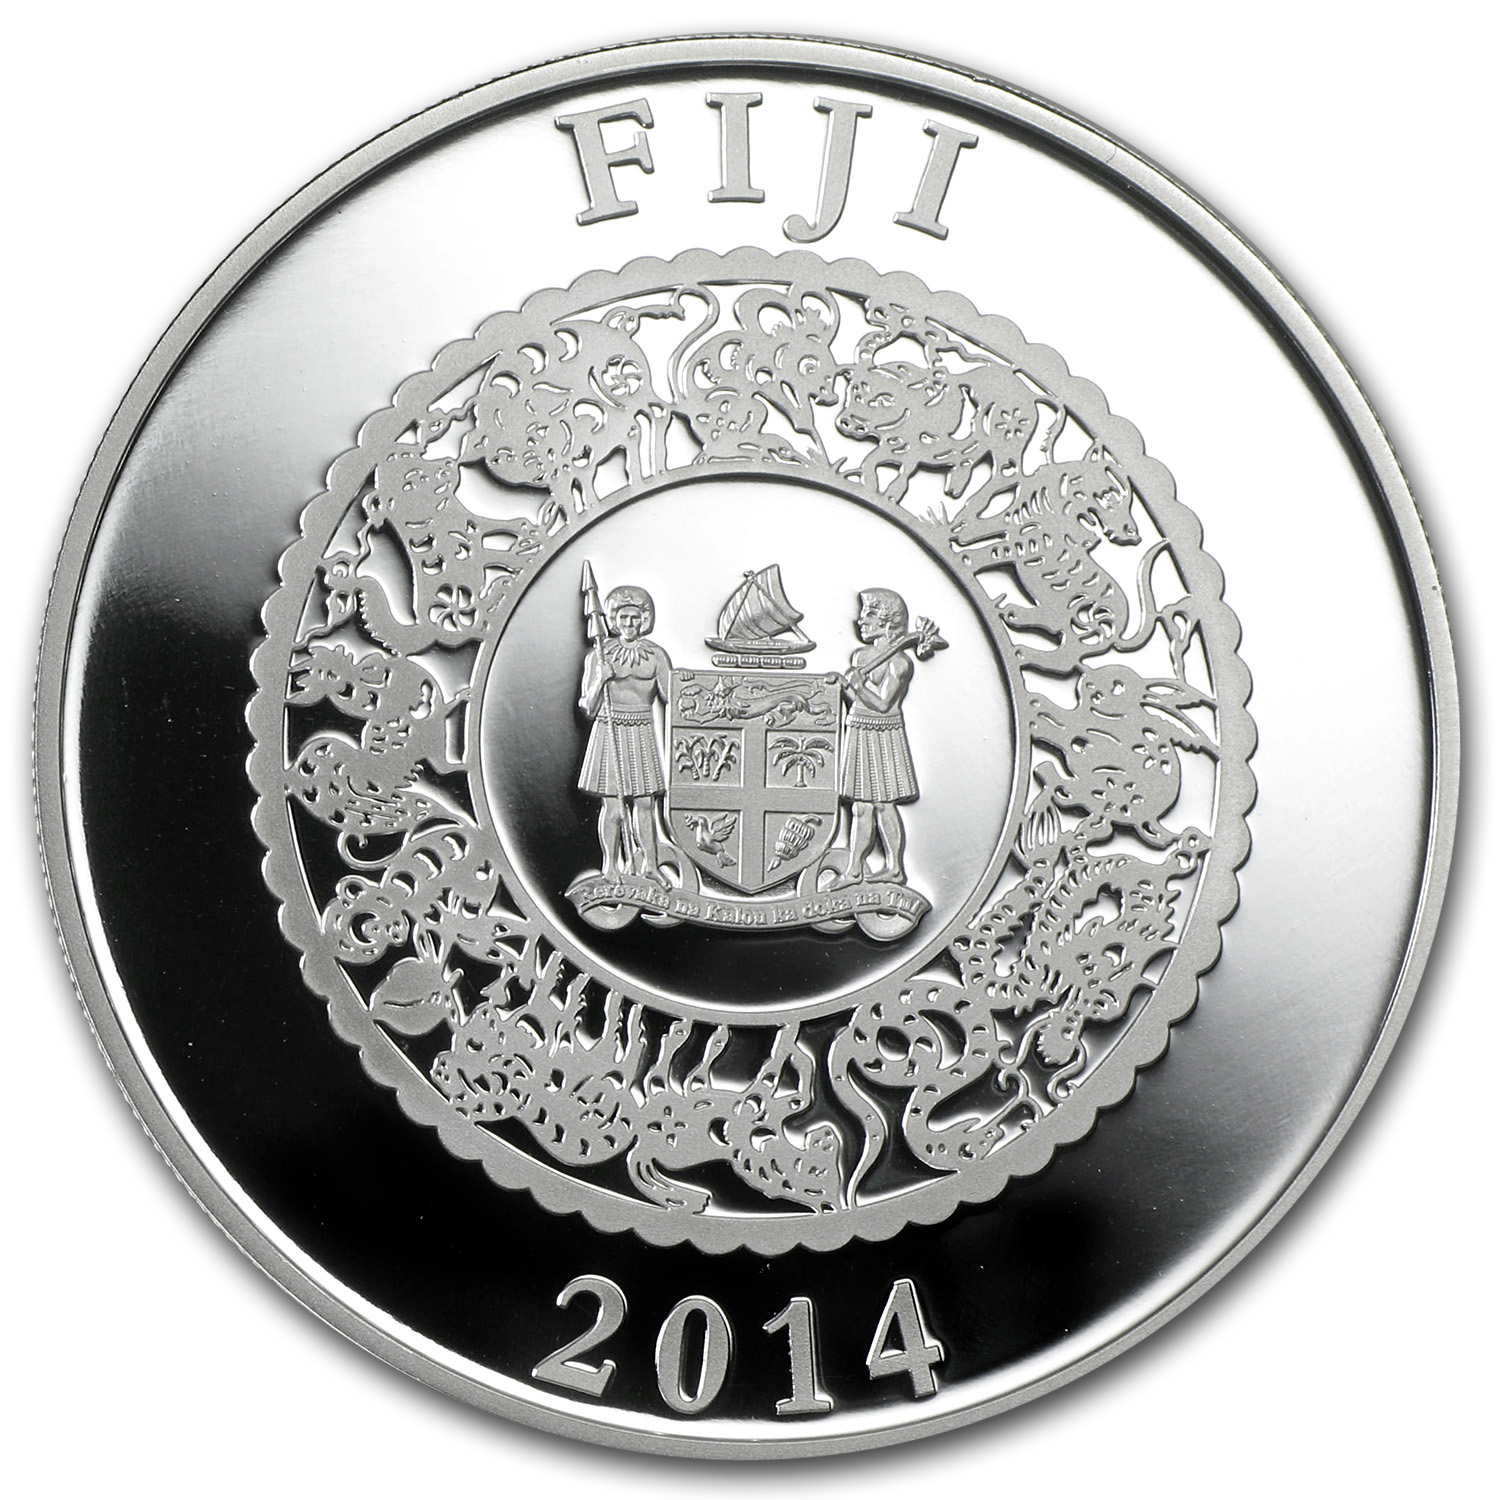 Fiji 2014 1 oz Silver Year of the Horse - Colored Lunar